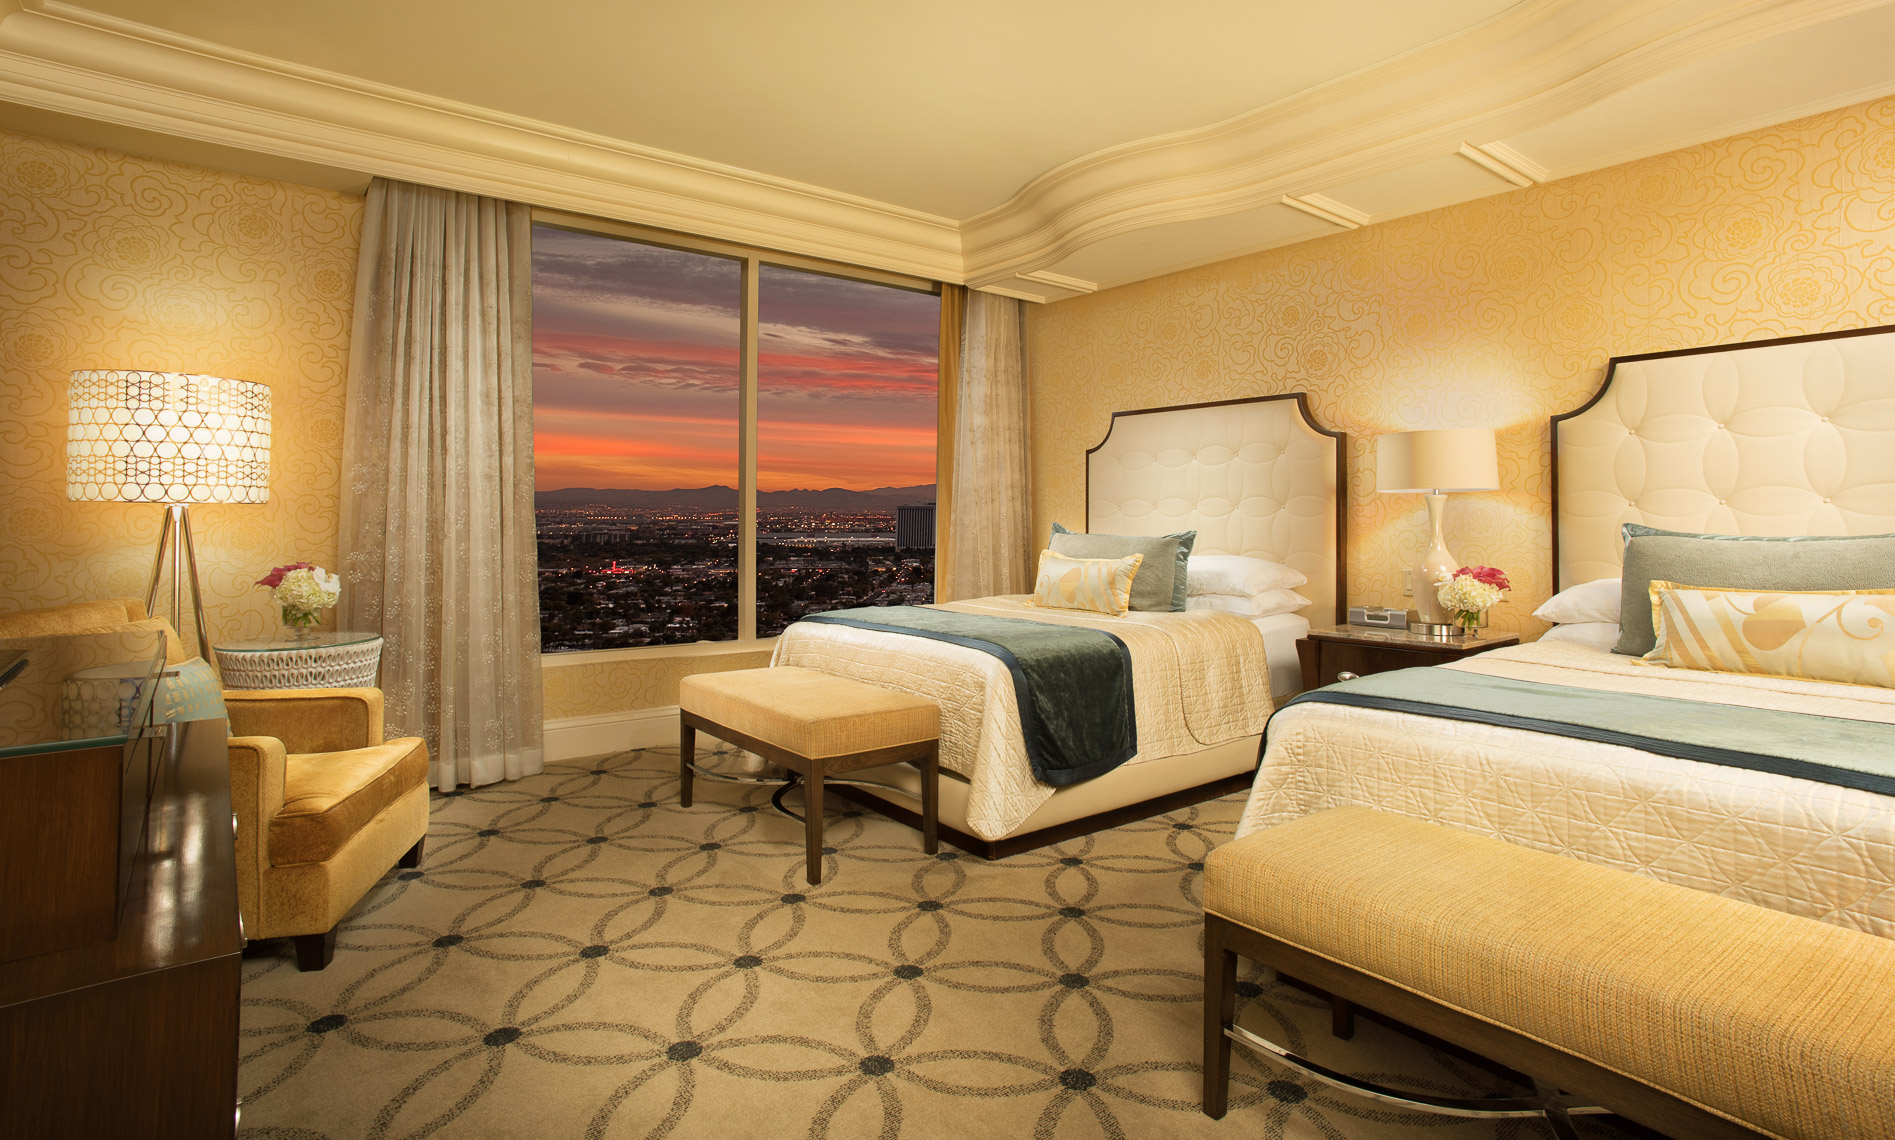 BellagioDoubleSuite-AnthonyMair